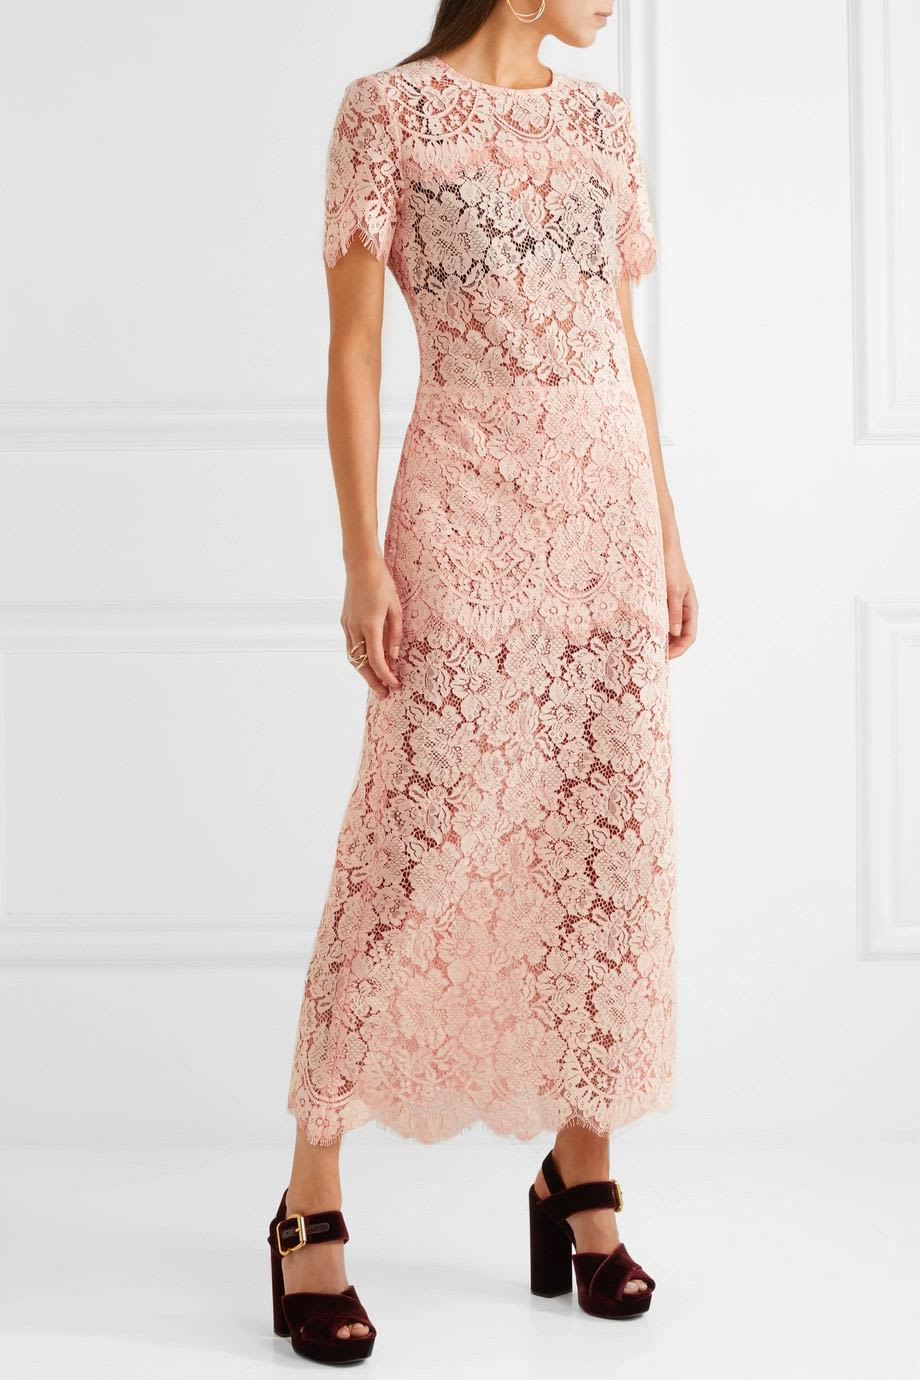 Ganni Duval corded lace midi dress 2